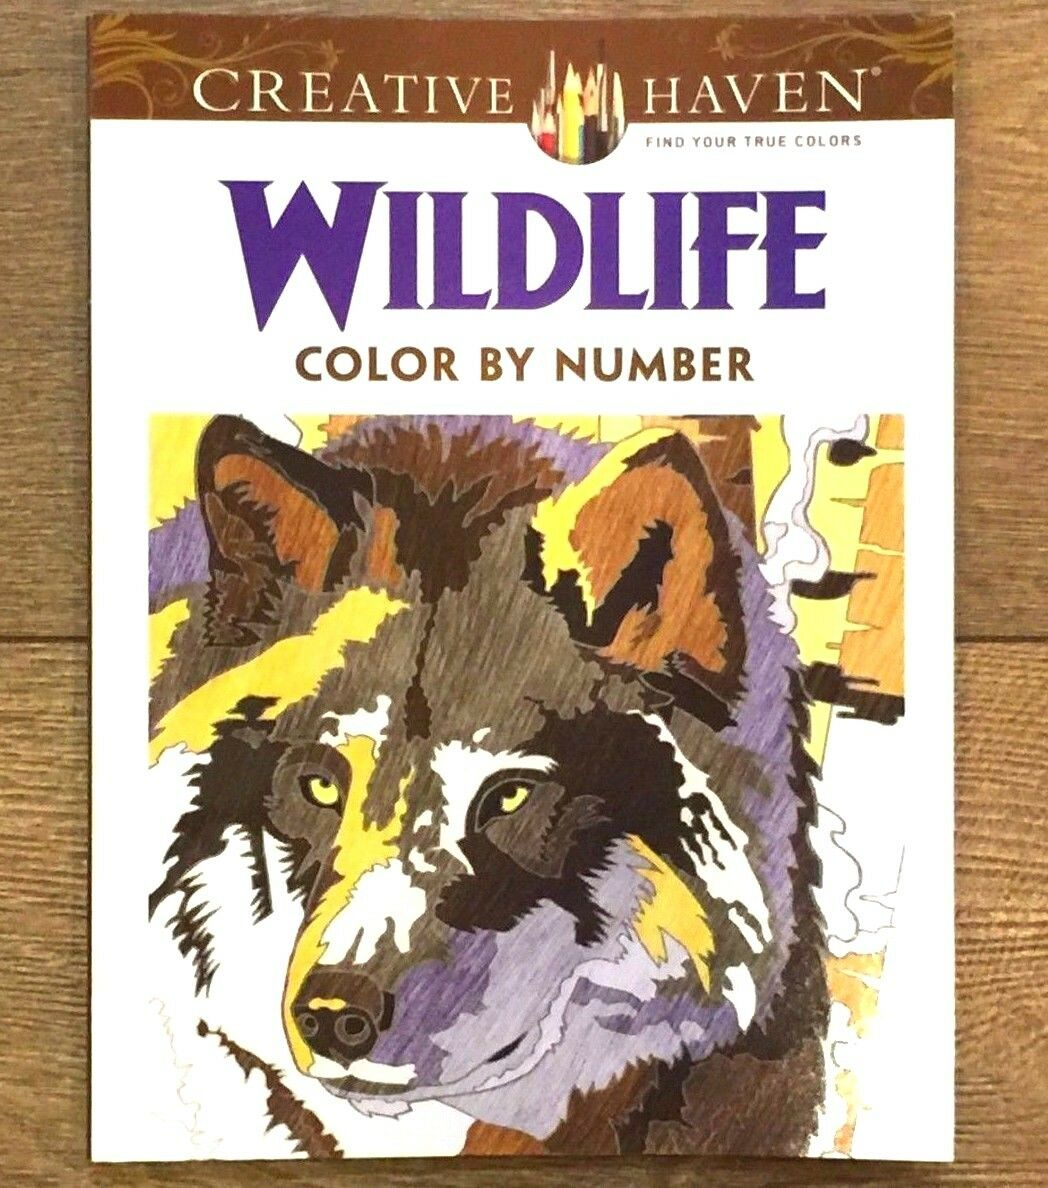 Adult Coloring Creative Haven Wildlife Color By Number Book Diego Jourdan Pereira 2015 Paperback